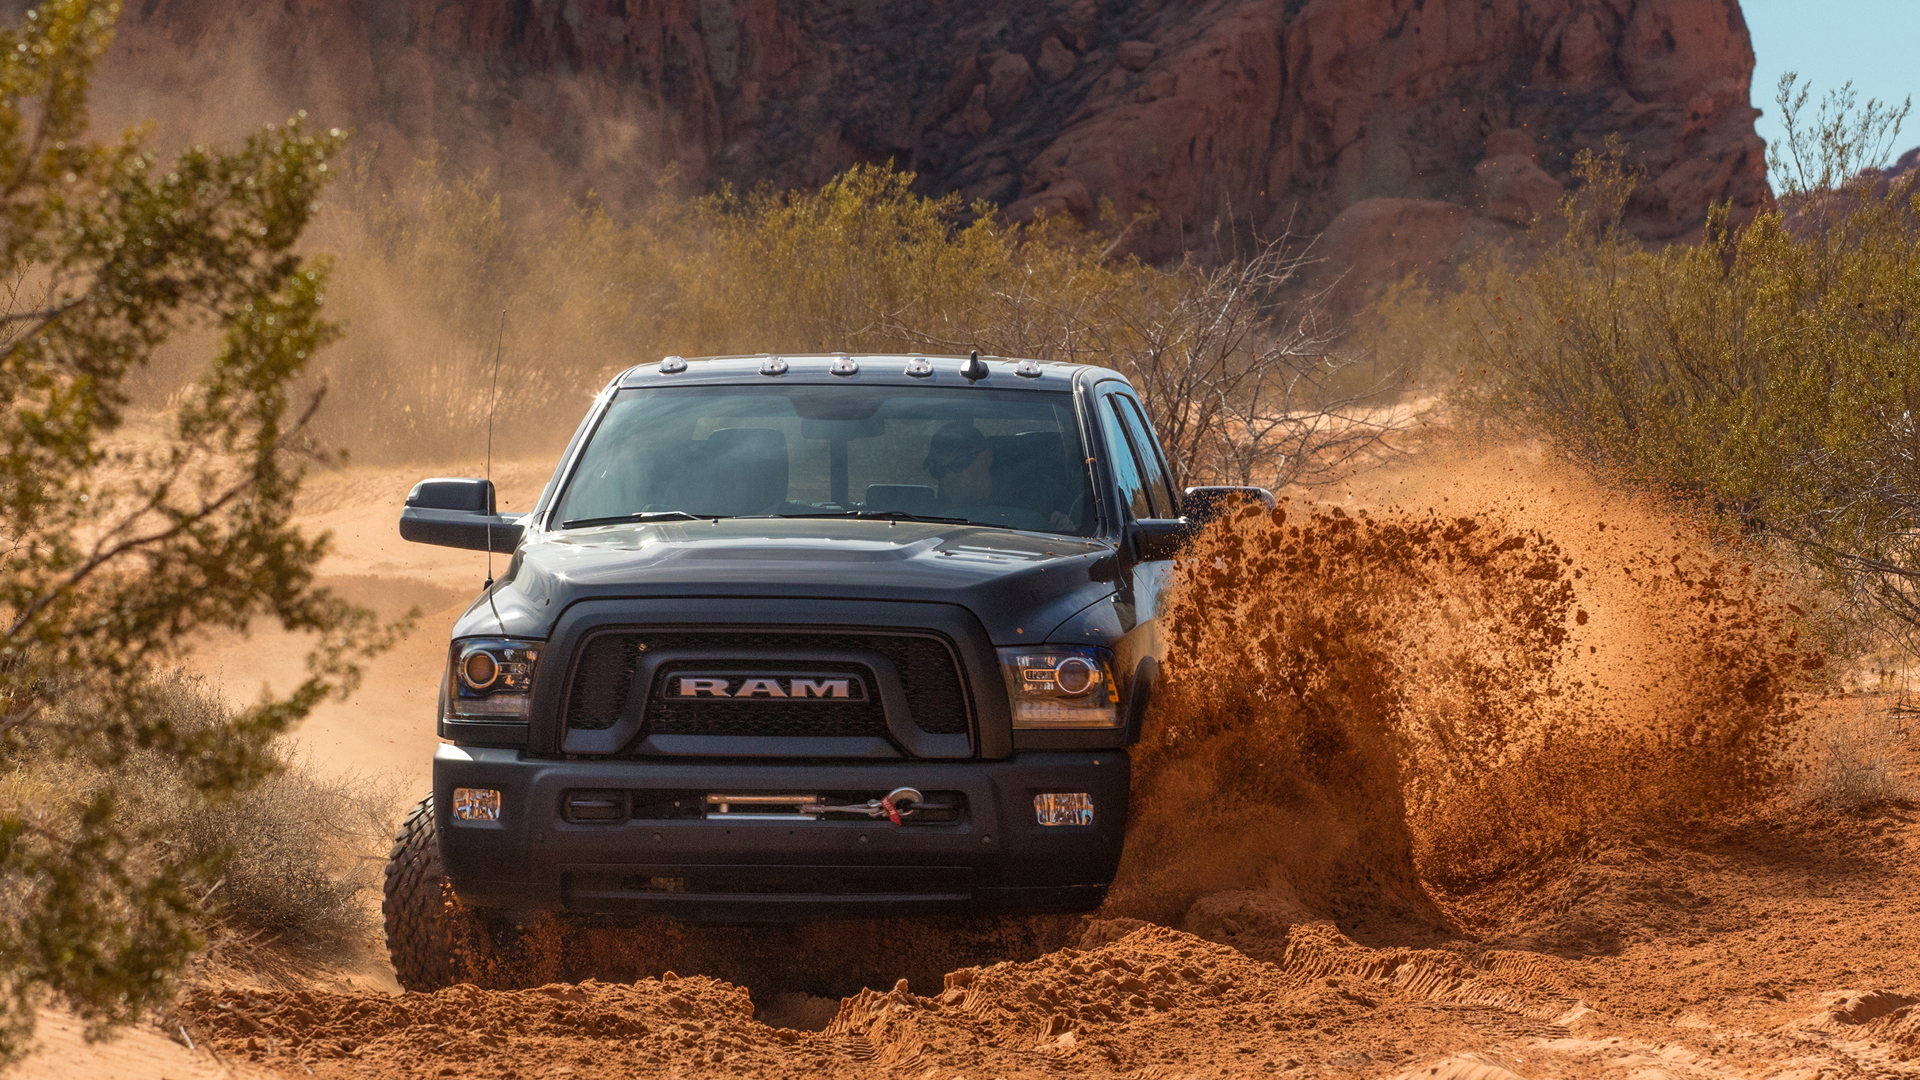 2017 Ram Power Wagon First Drive Review Irrational But Appealing